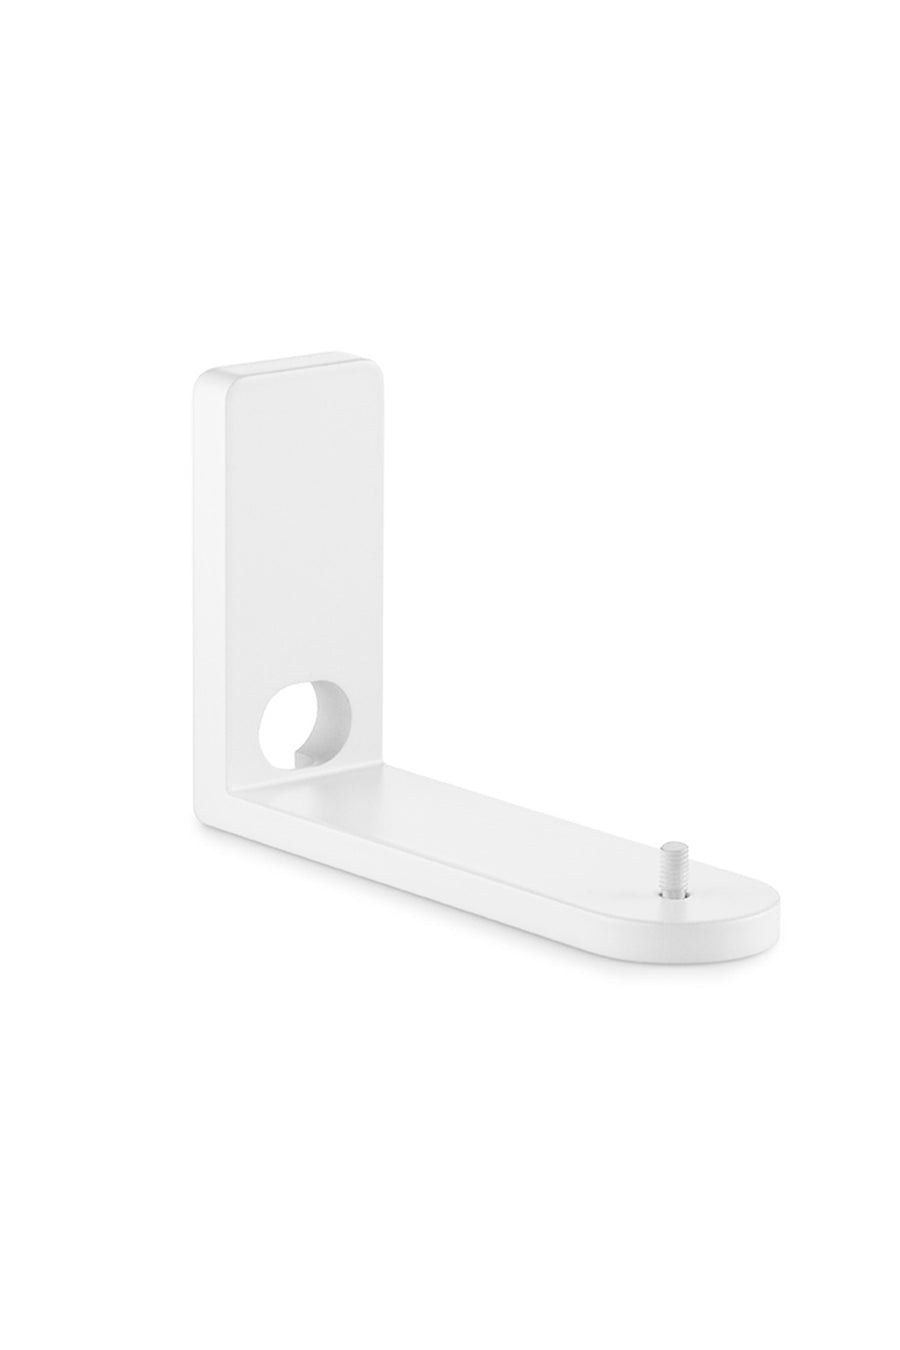 Beoplay M3 Wall Mount